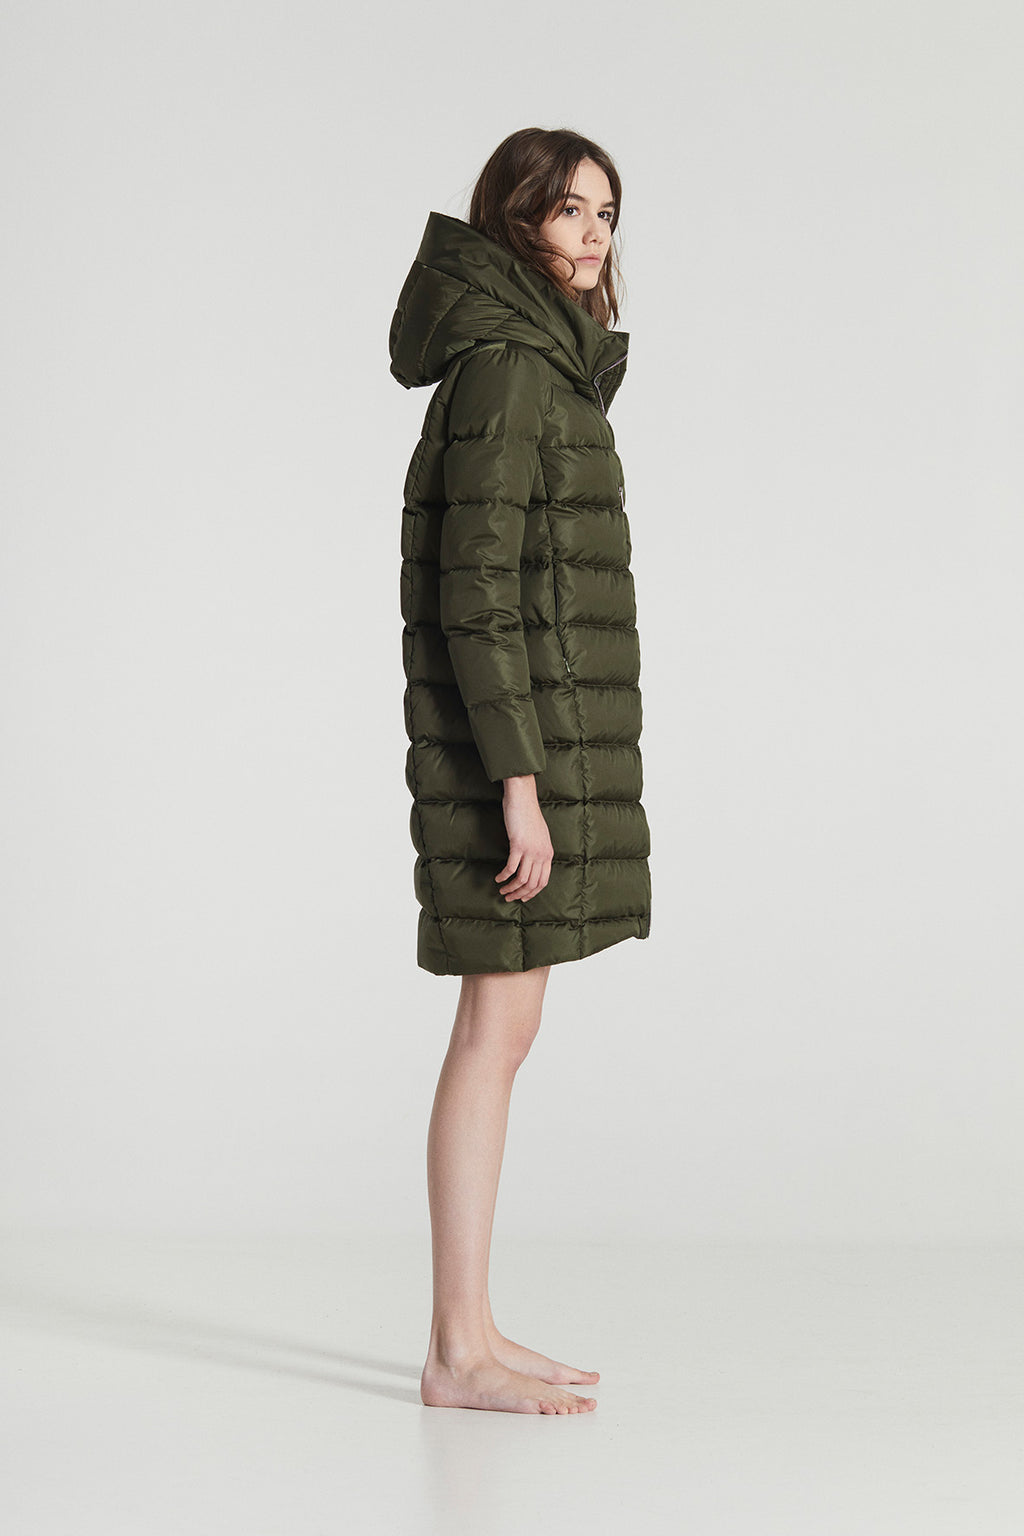 BERGLIN / Green Goose Down horizontal stitched Winter Jacket